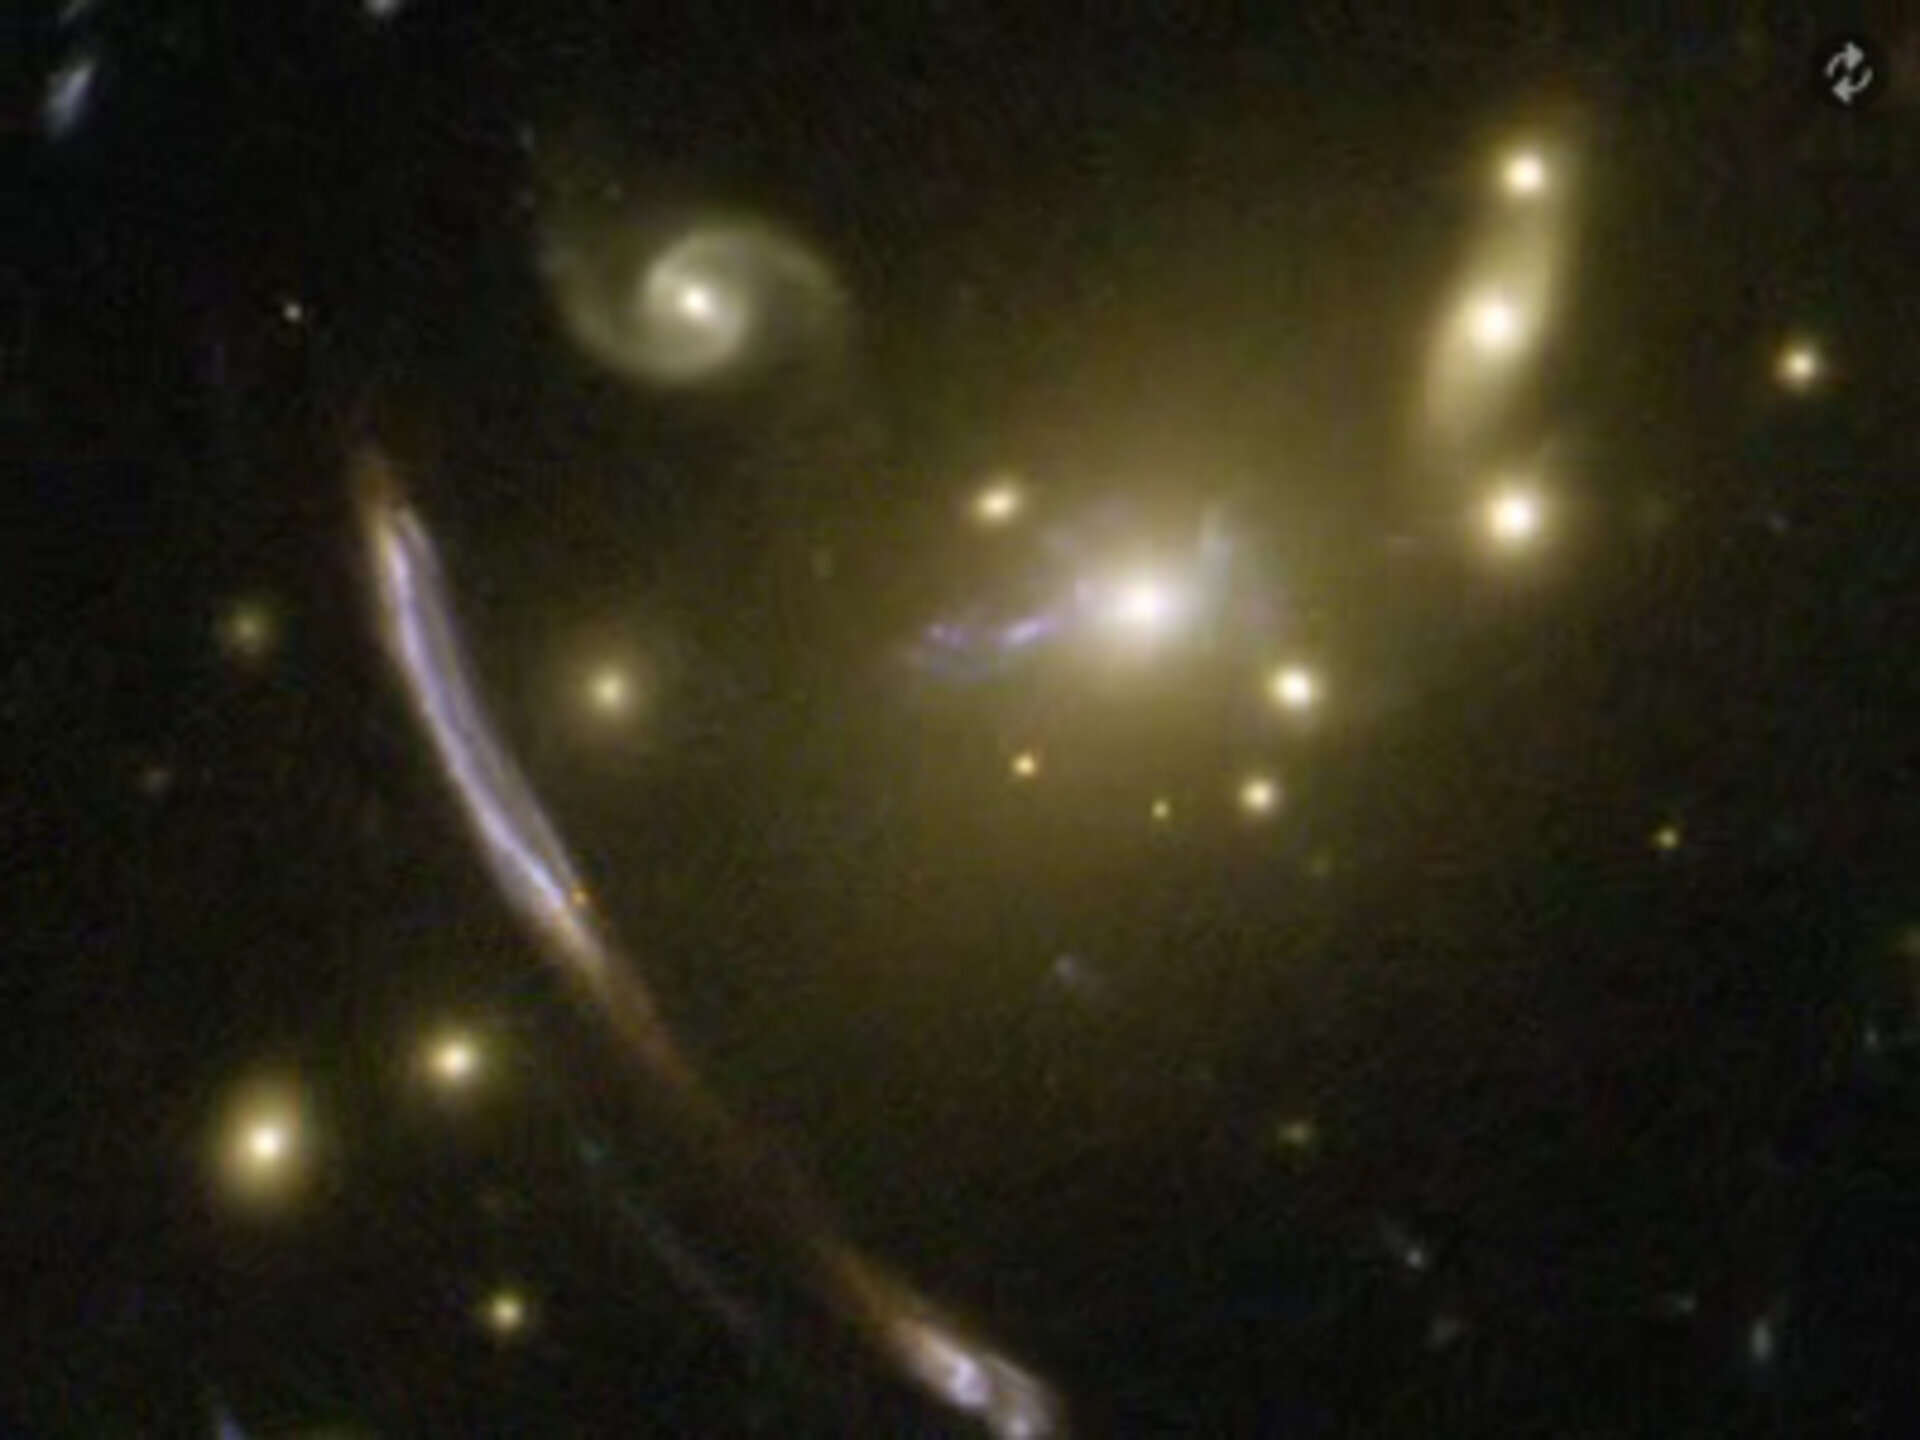 Zooming and panning on galaxy cluster Abell 2667.